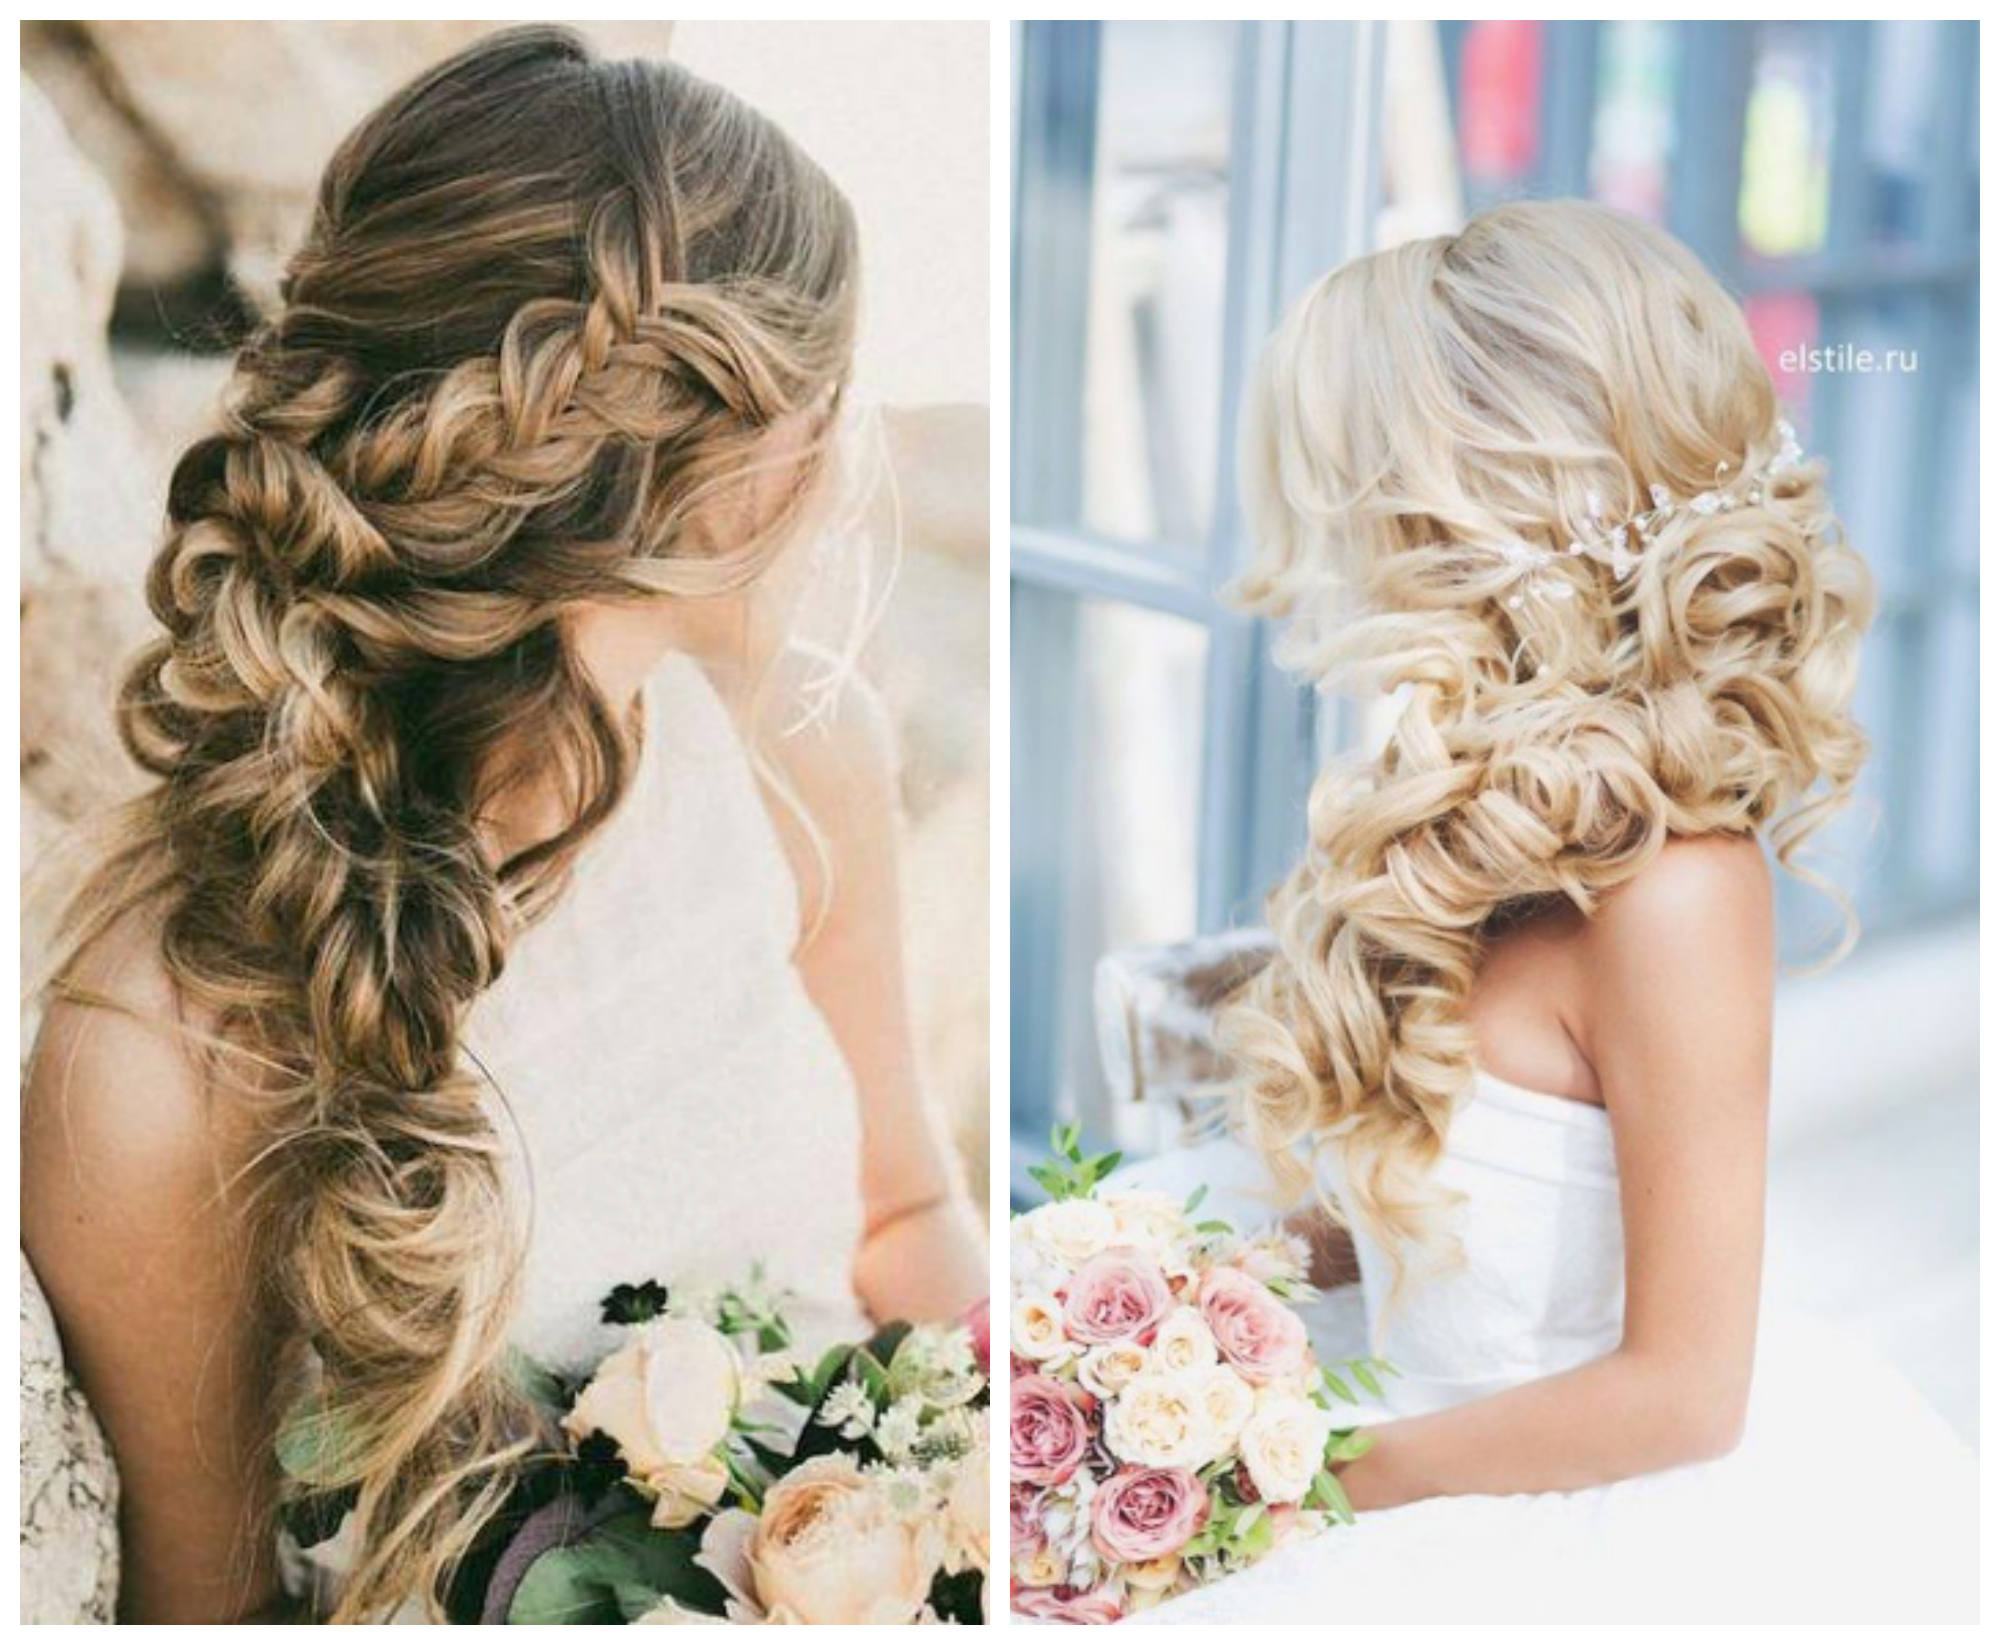 Wedding Hair Hairstyles: 5 Bridal Hairstyles For Your Wedding Day